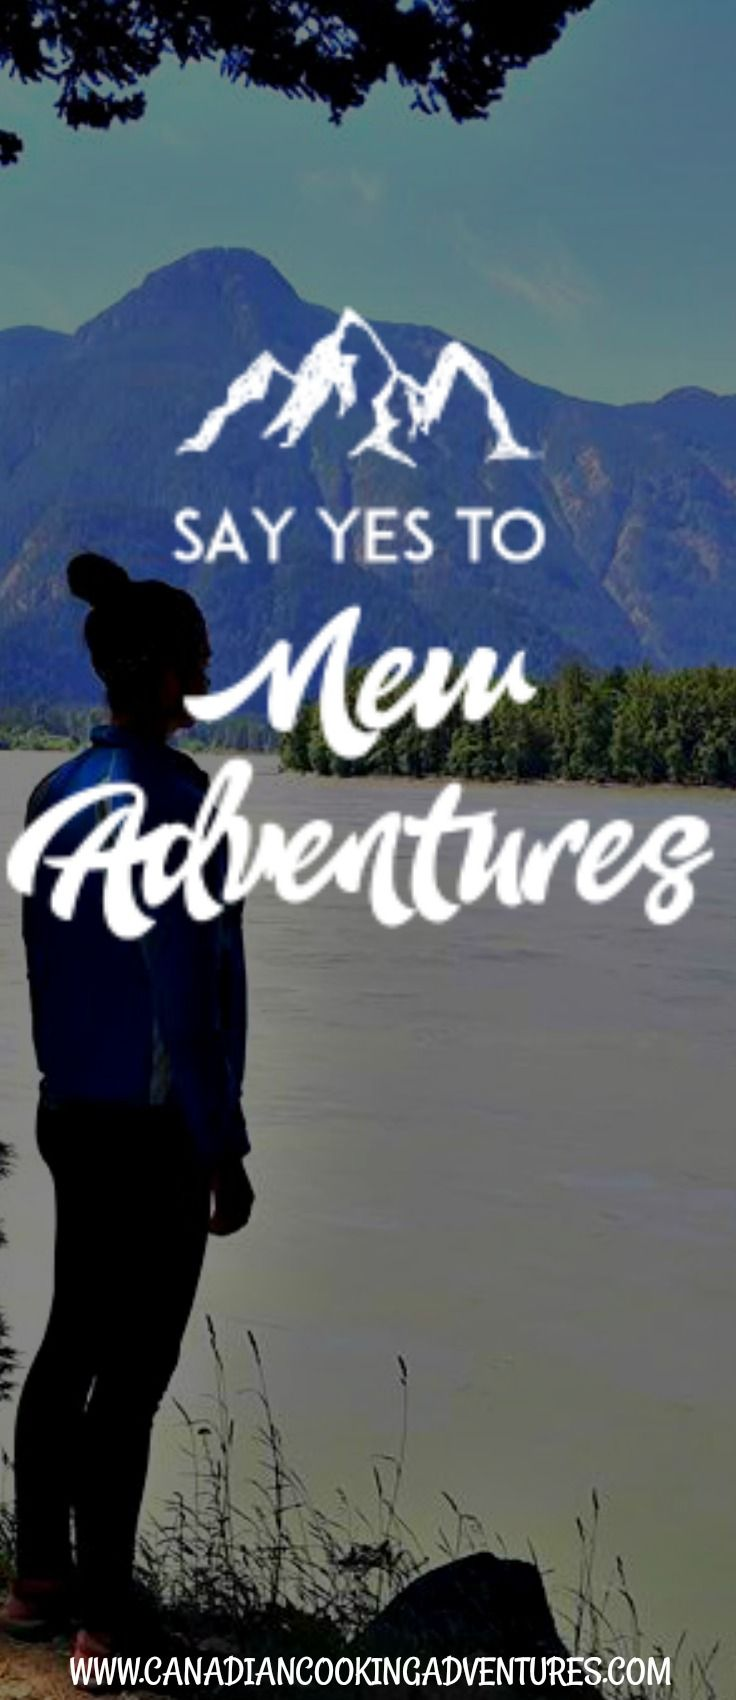 Quotes On Adventure 555 Best Global Quotes ✈ Explore Images On Pinterest